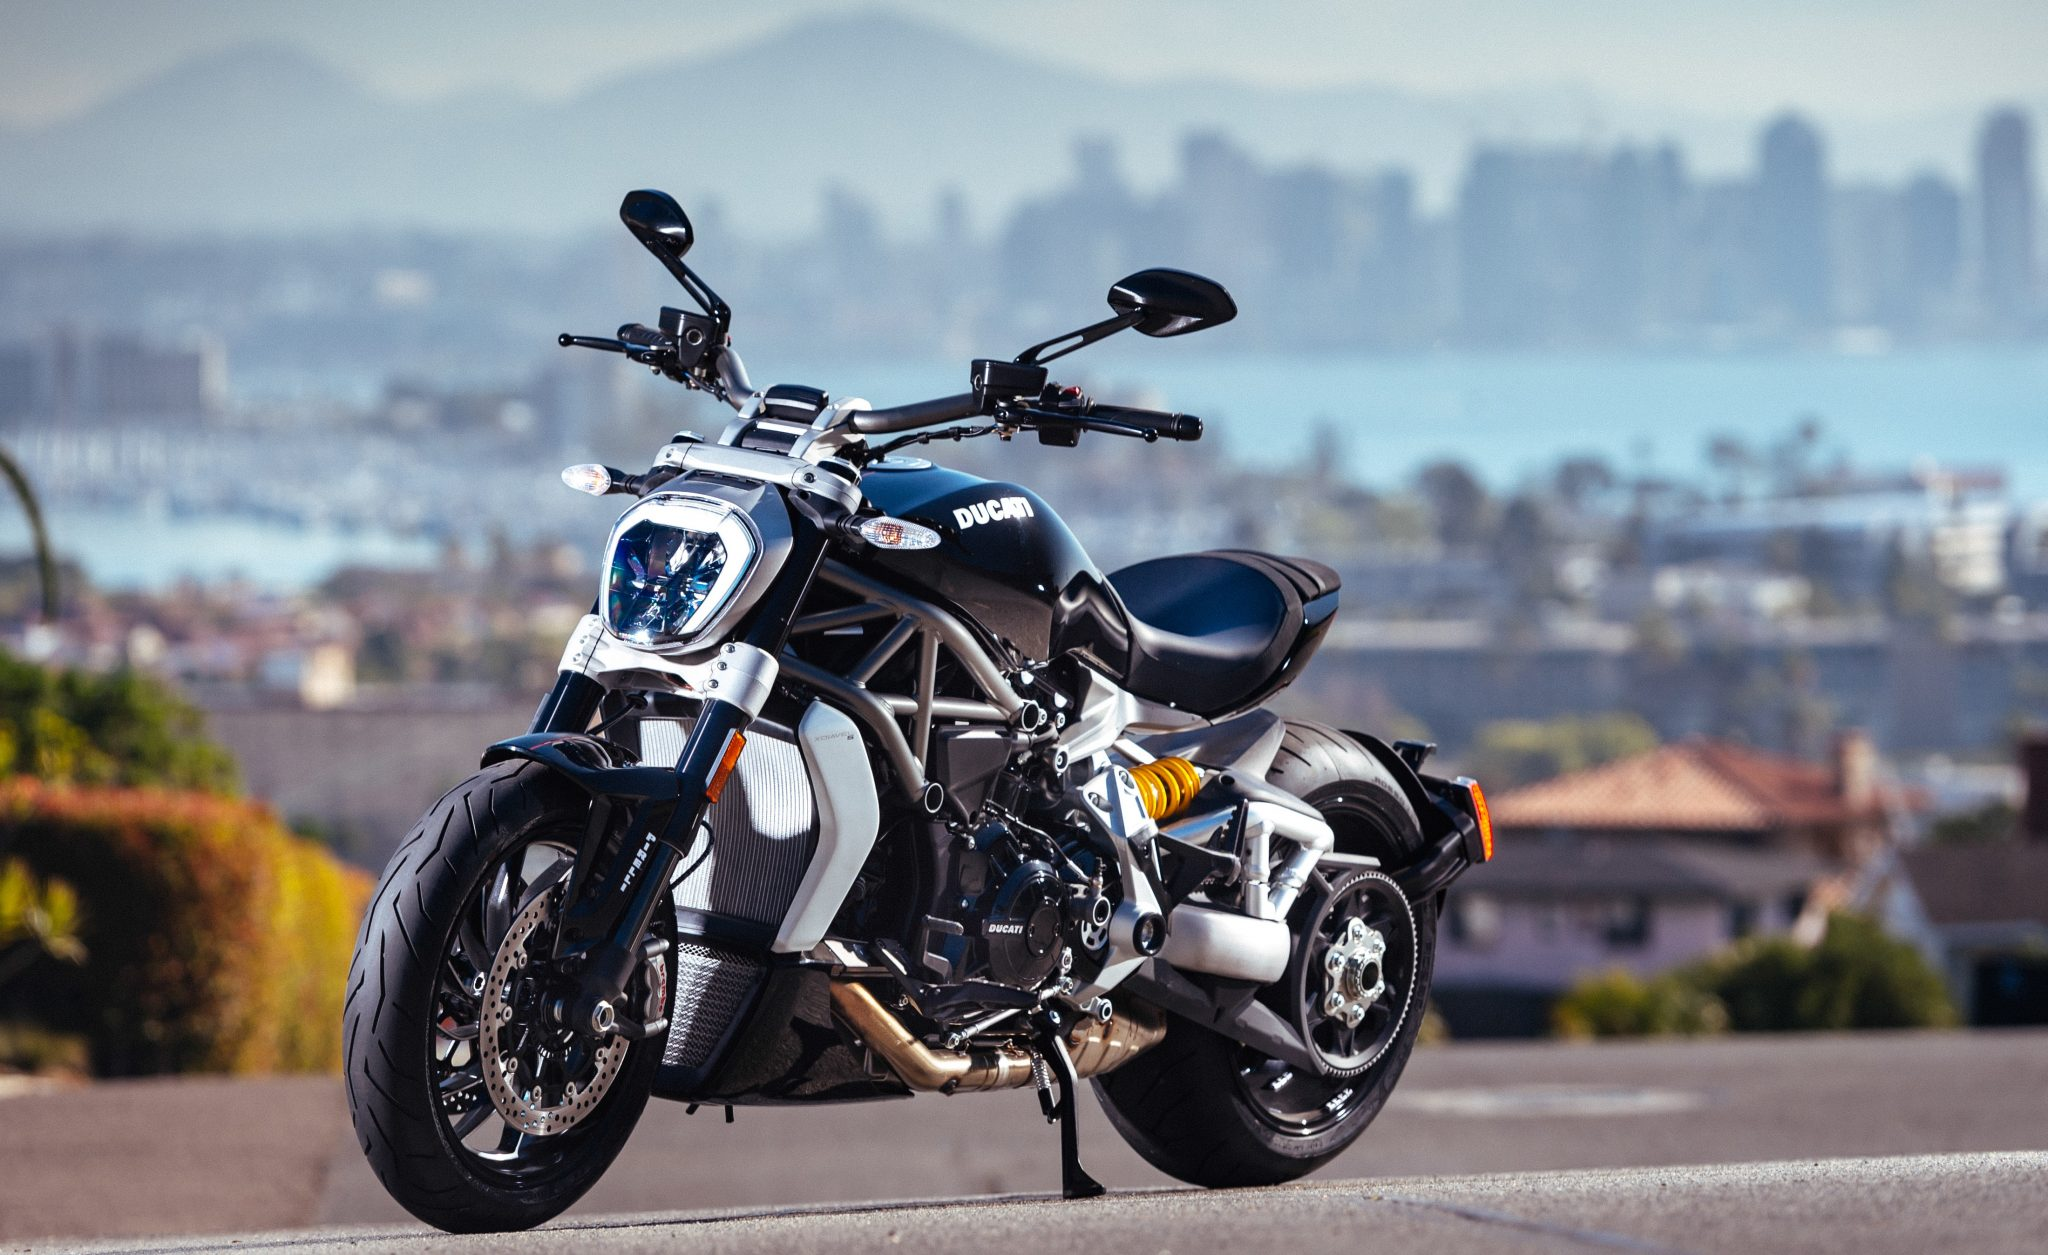 Have you seen the new modified Ducati XDiavel by Fred Krugger?